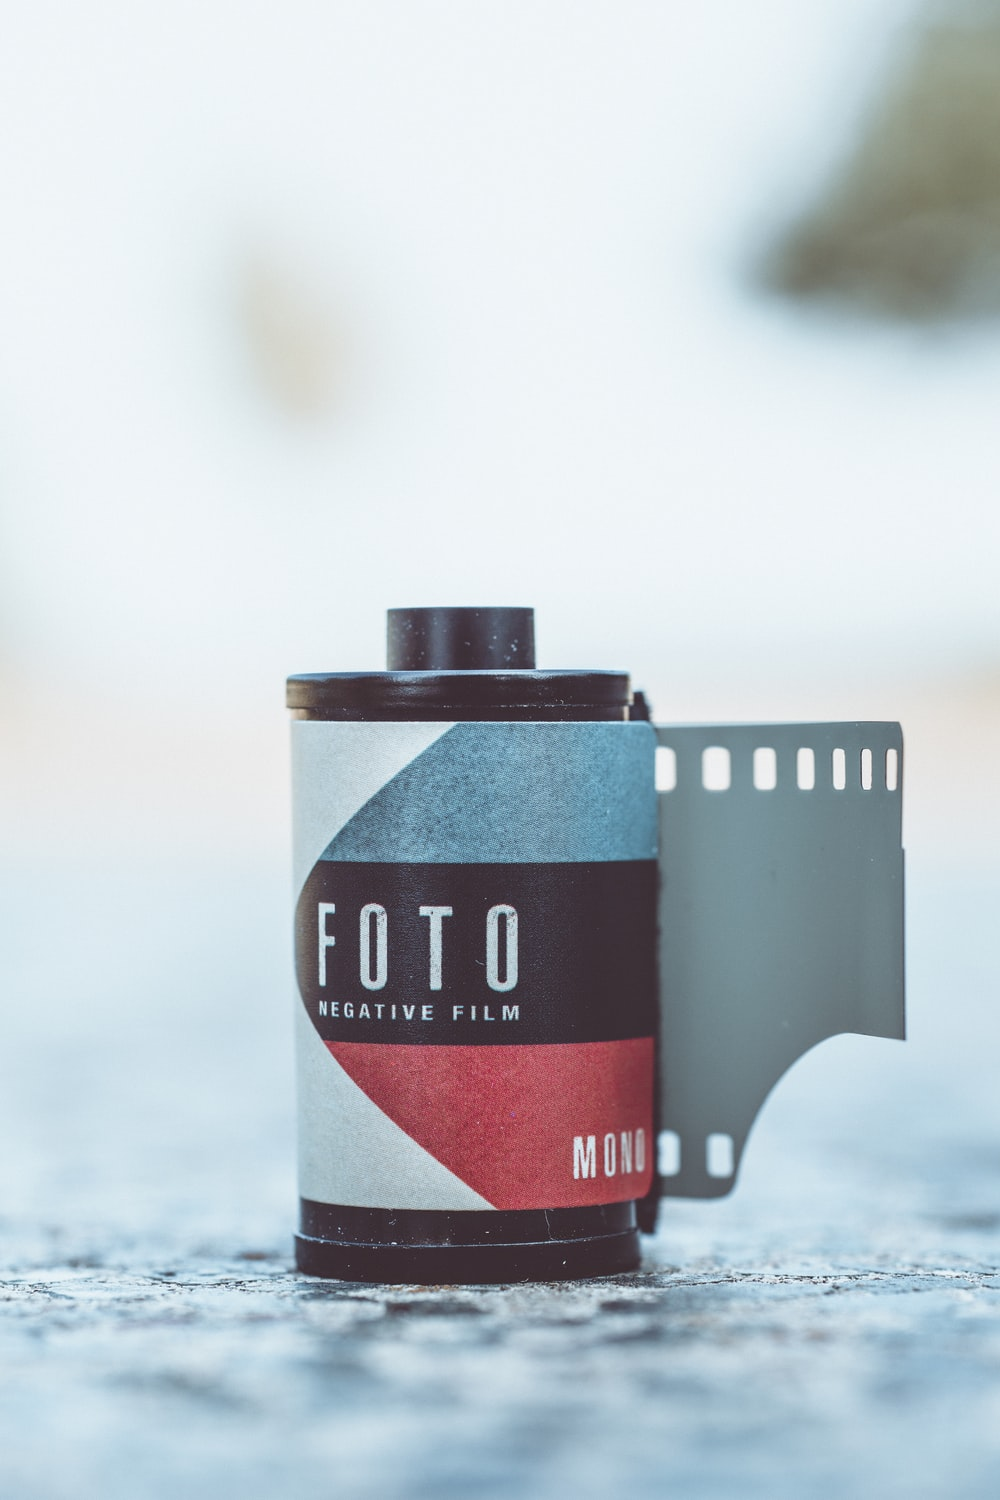 Foto film on gray surface